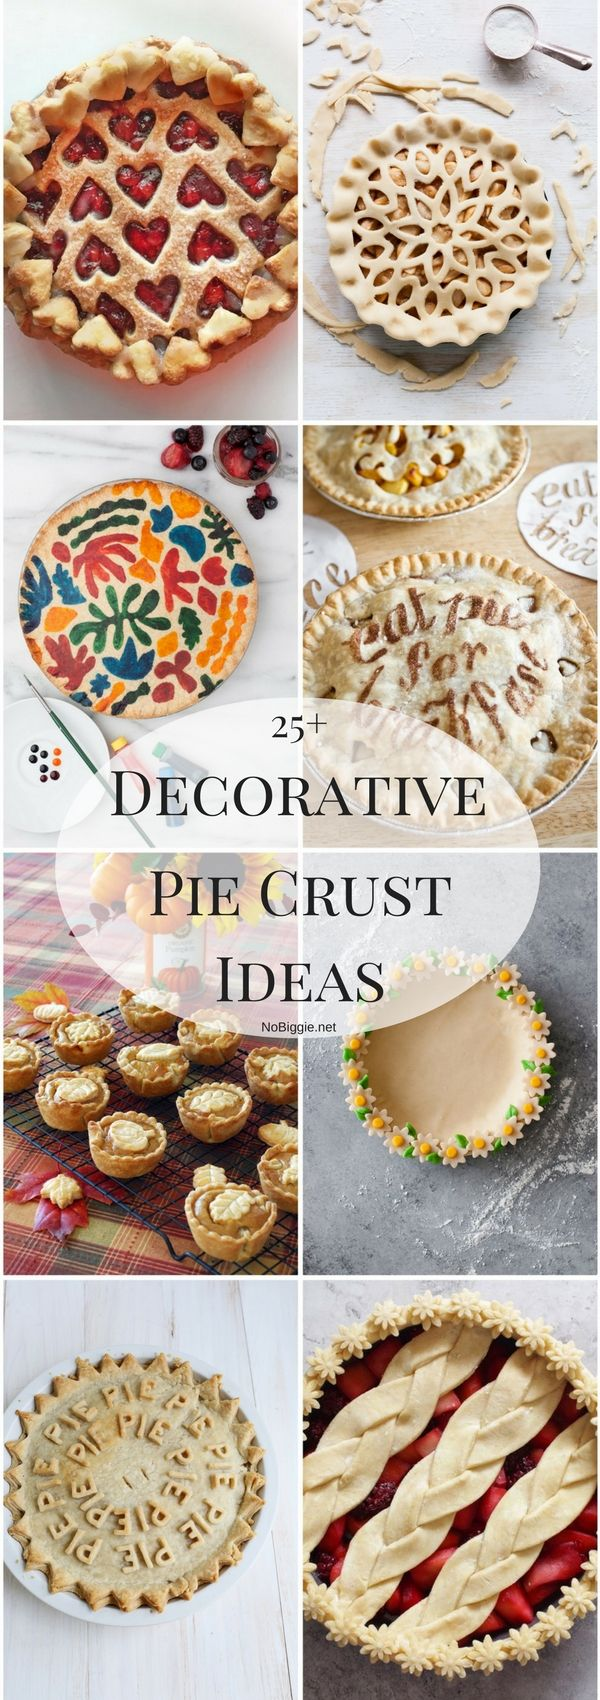 25+ Decorative Pie Crust Ideas | NoBiggie.net